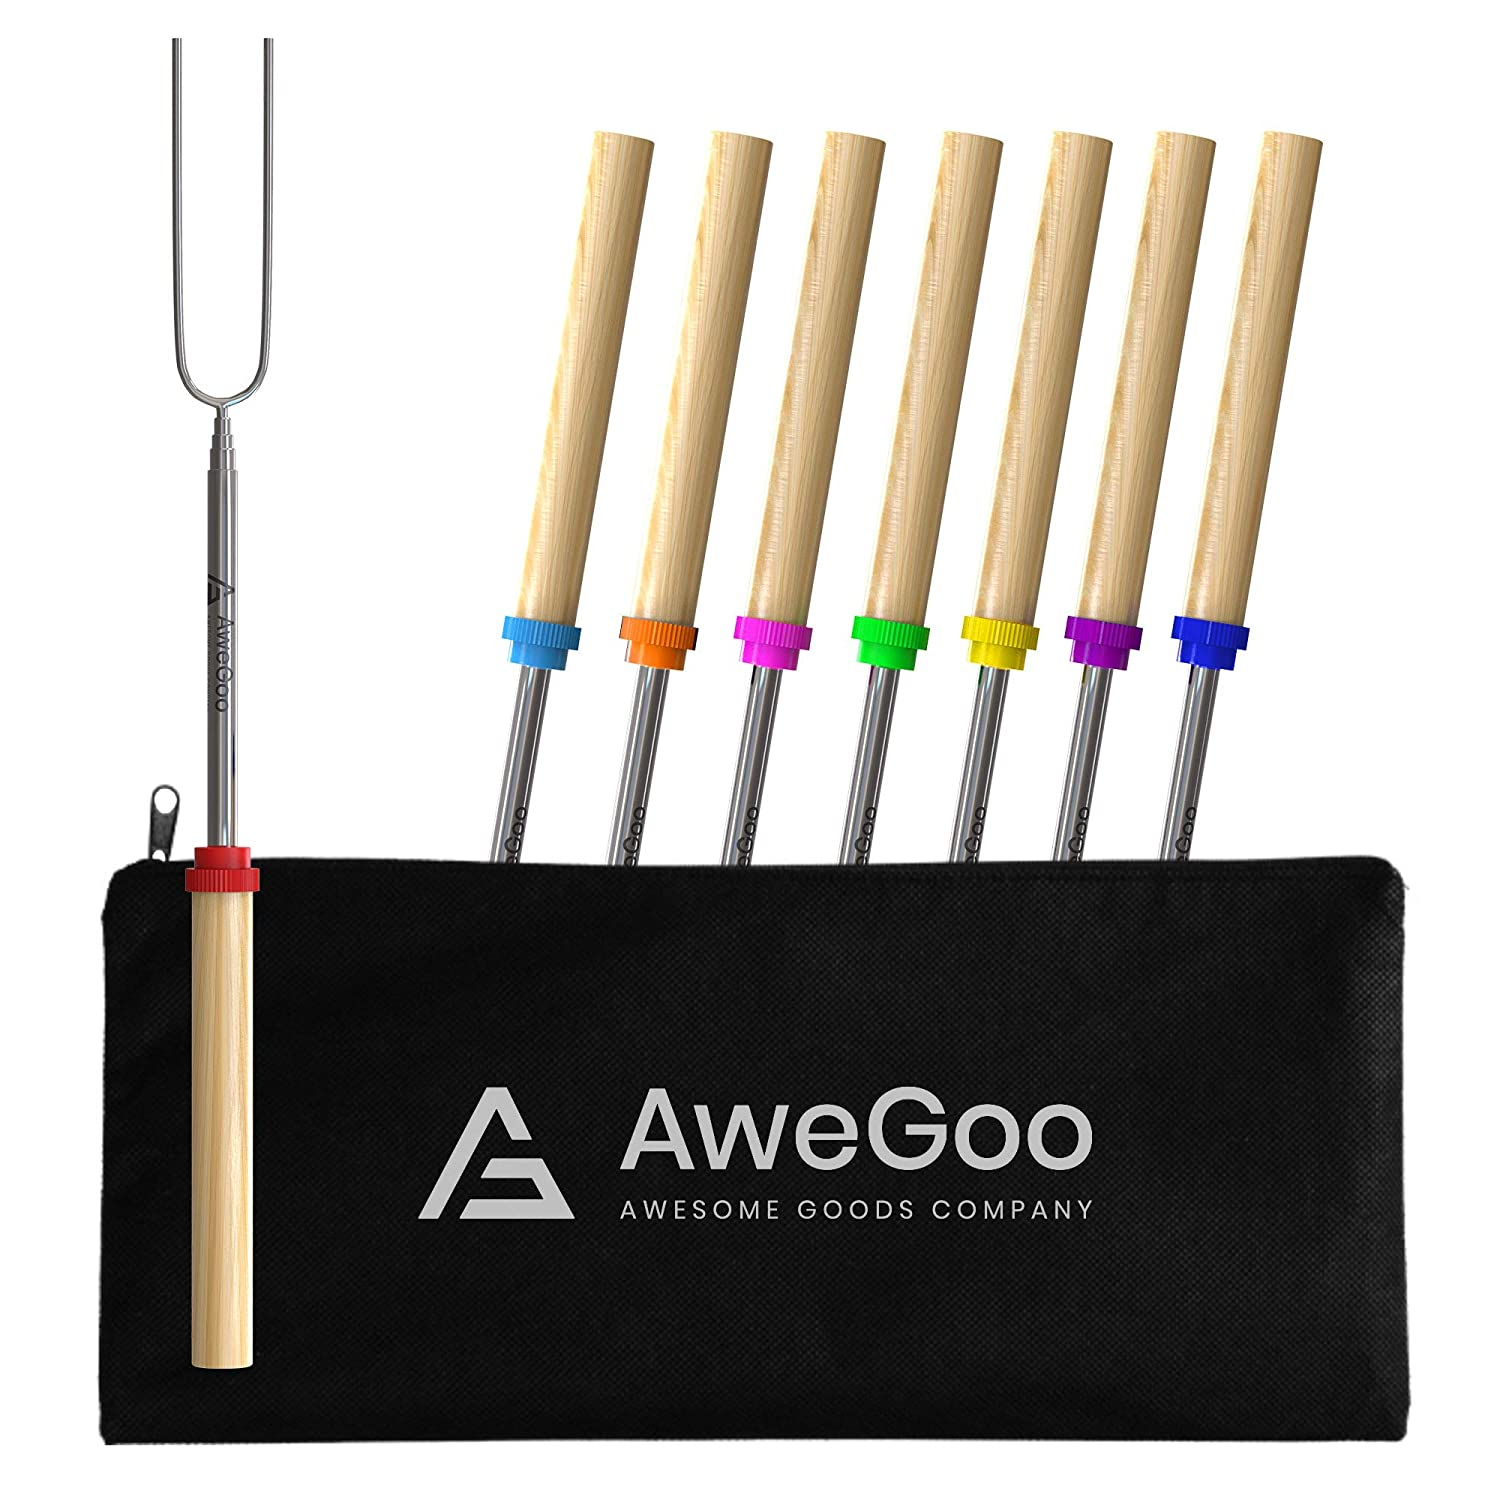 AweGoo Smores Sticks for Fire Pit Marshmallow Roasting Sticks Campfire Smores Skewers Extendable Camping Sticks Set of 8 812BWfDTUfL